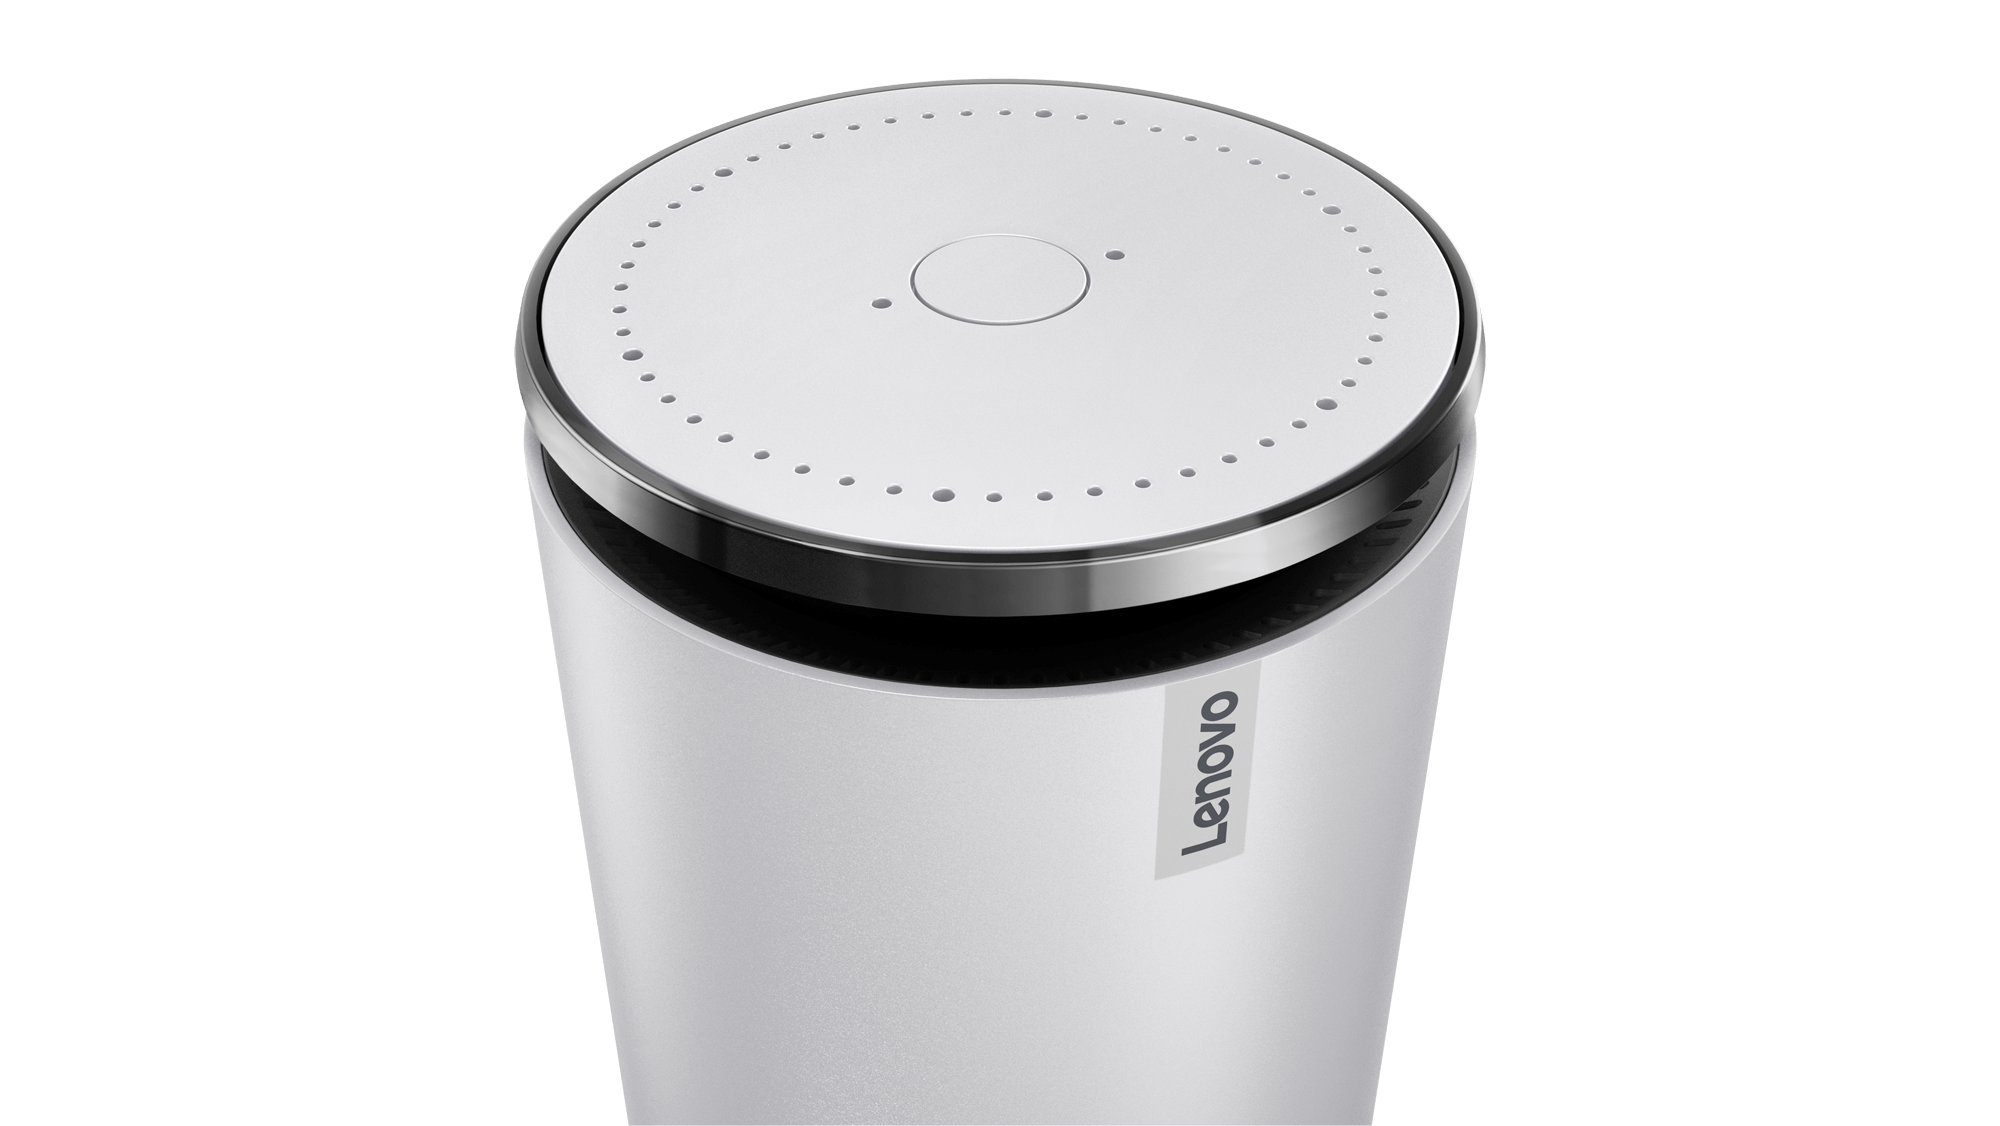 lenovo launches smart assistant a 130 amazon echo competitor with alexa inside venturebeat. Black Bedroom Furniture Sets. Home Design Ideas